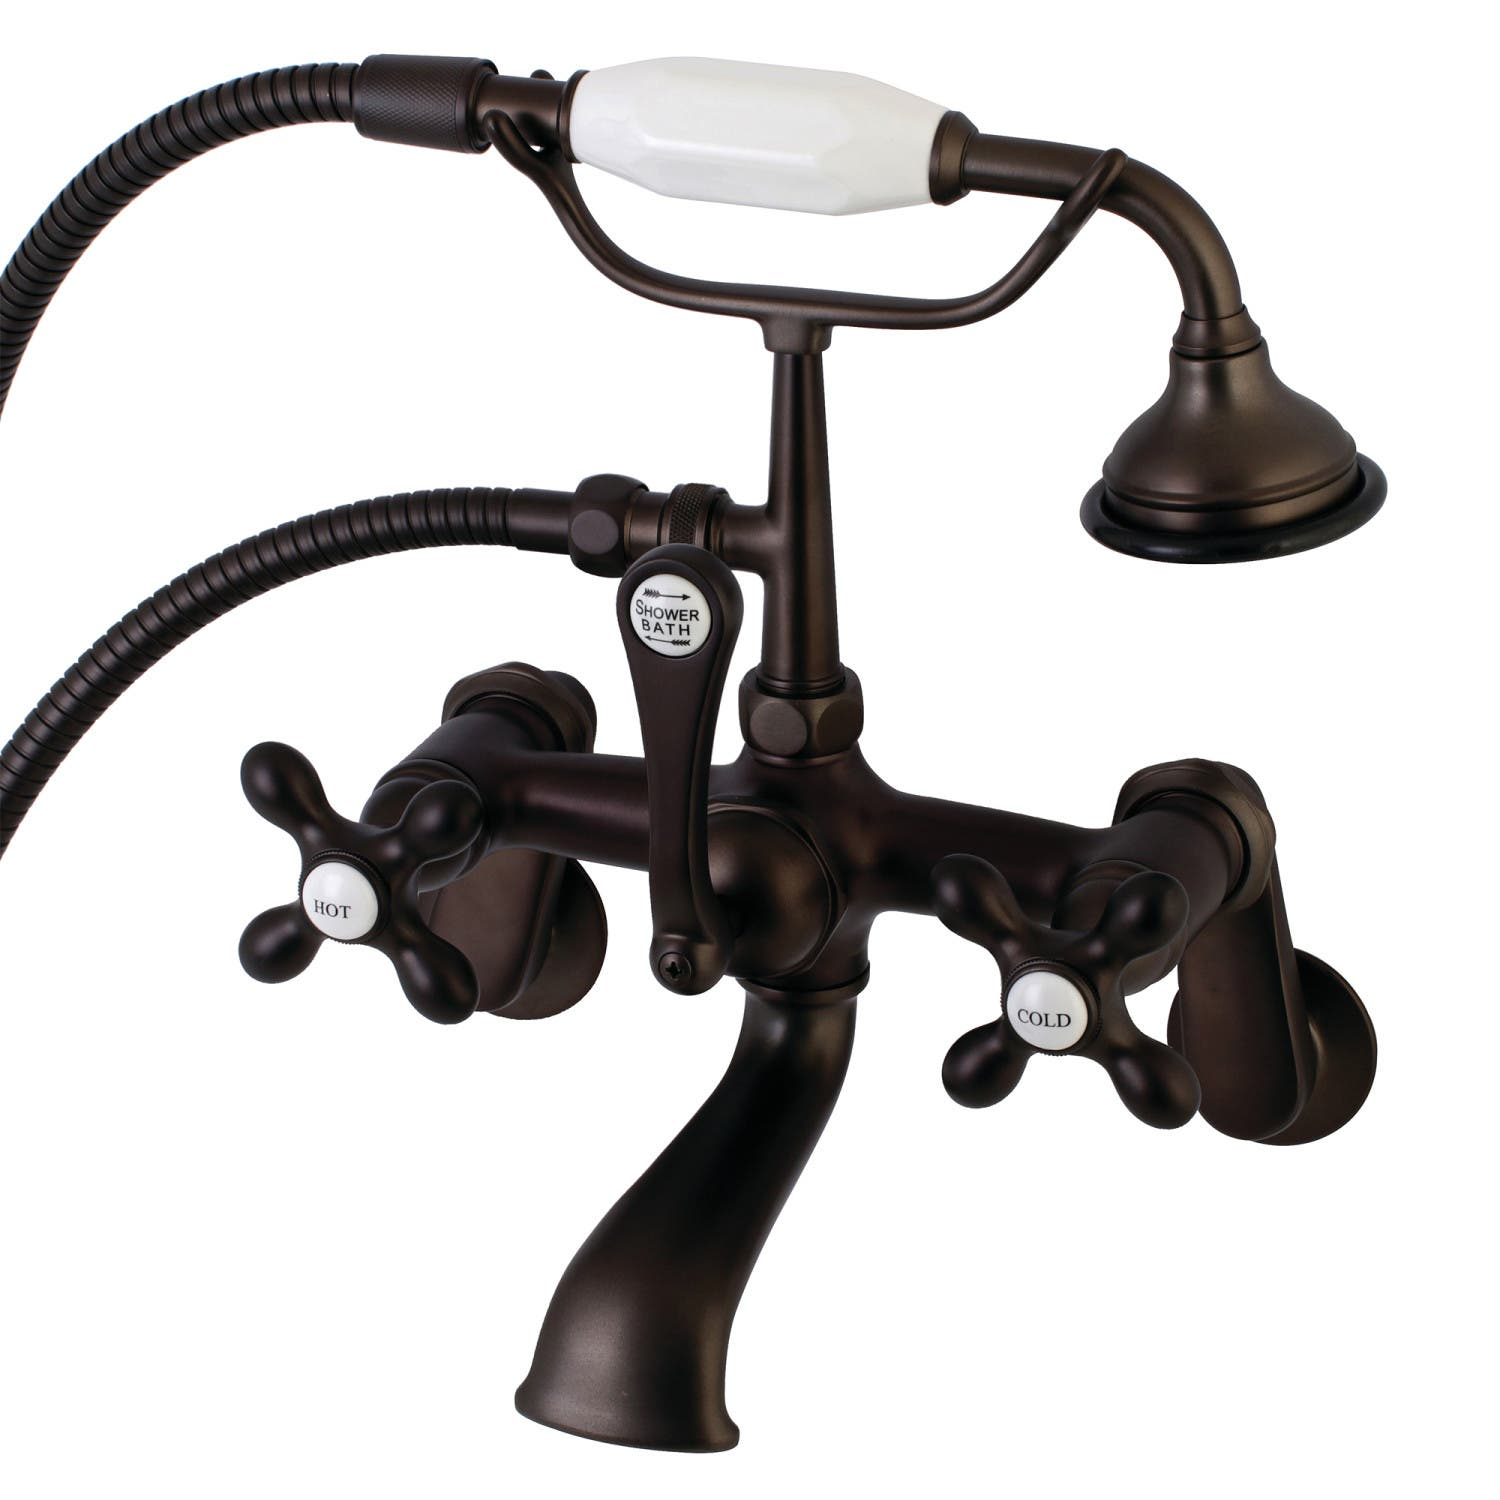 Aqua Vintage AE57T5 Wall Mount Clawfoot Tub Faucet with Hand Shower ...